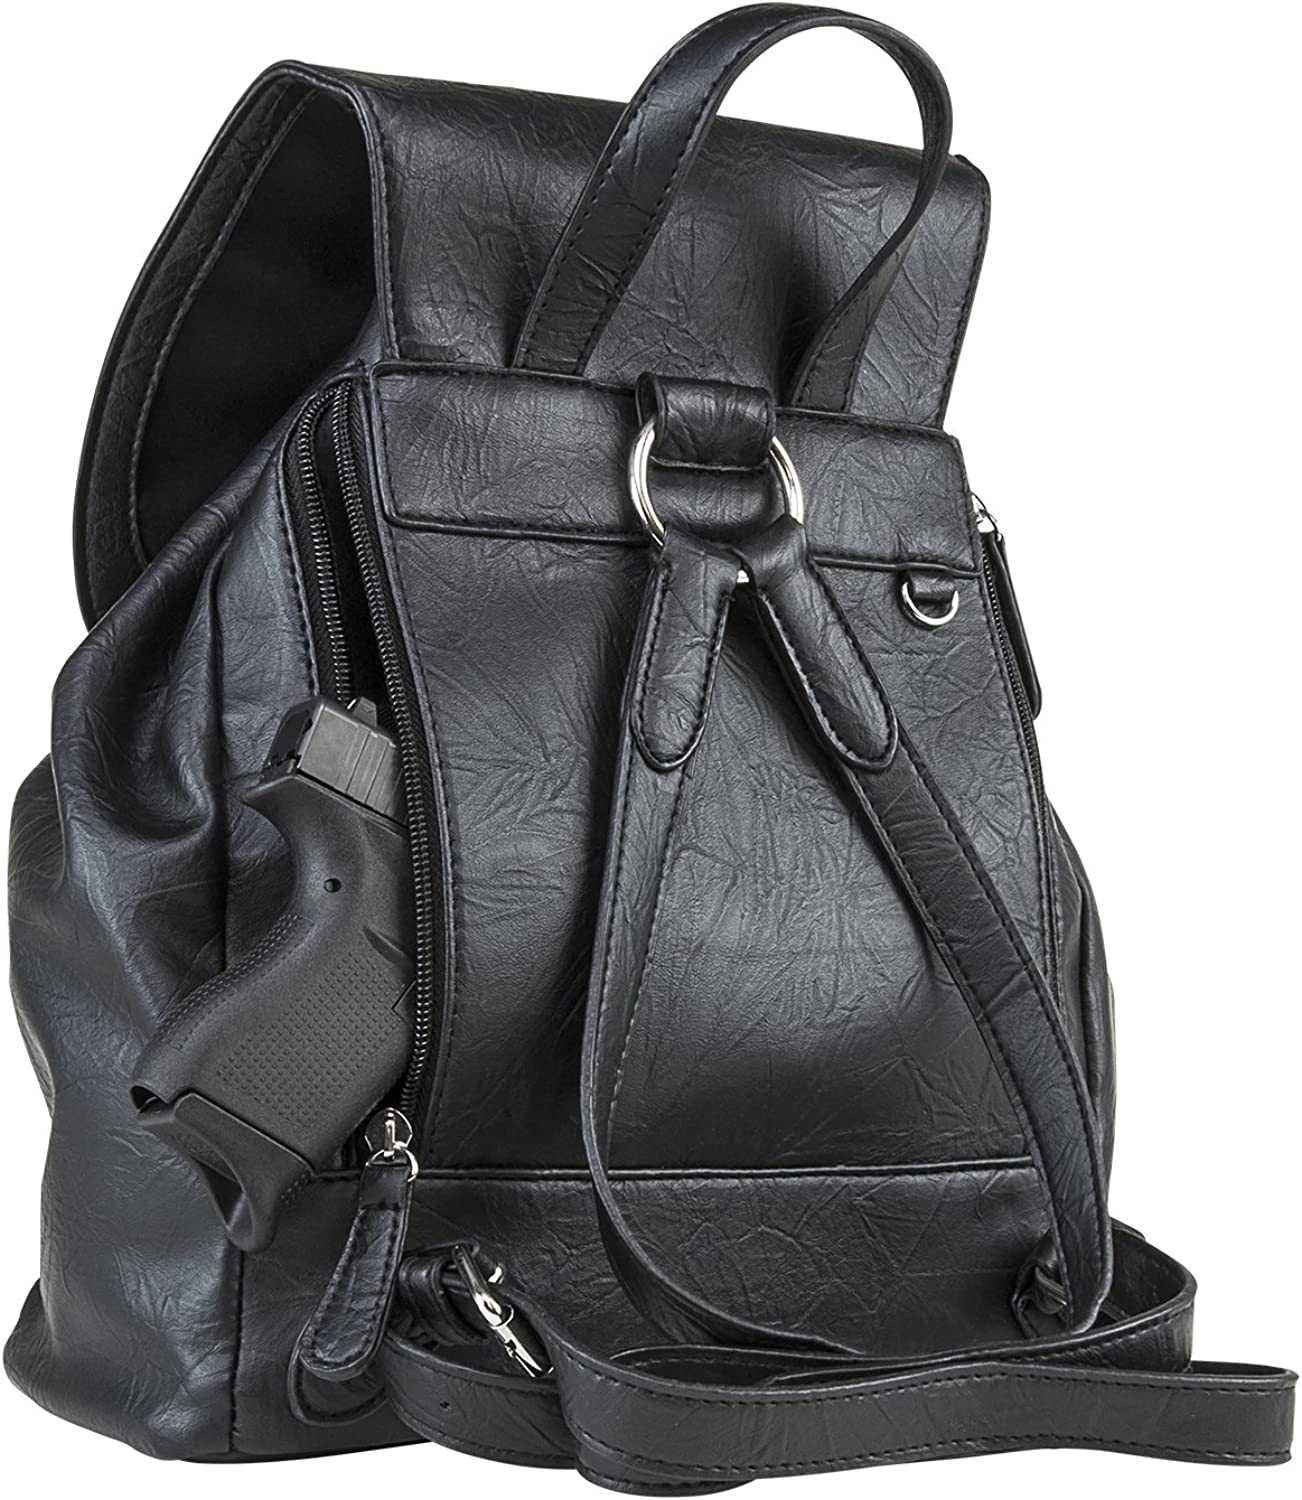 Universal Holster Black CCW Concealed Carry Backpack